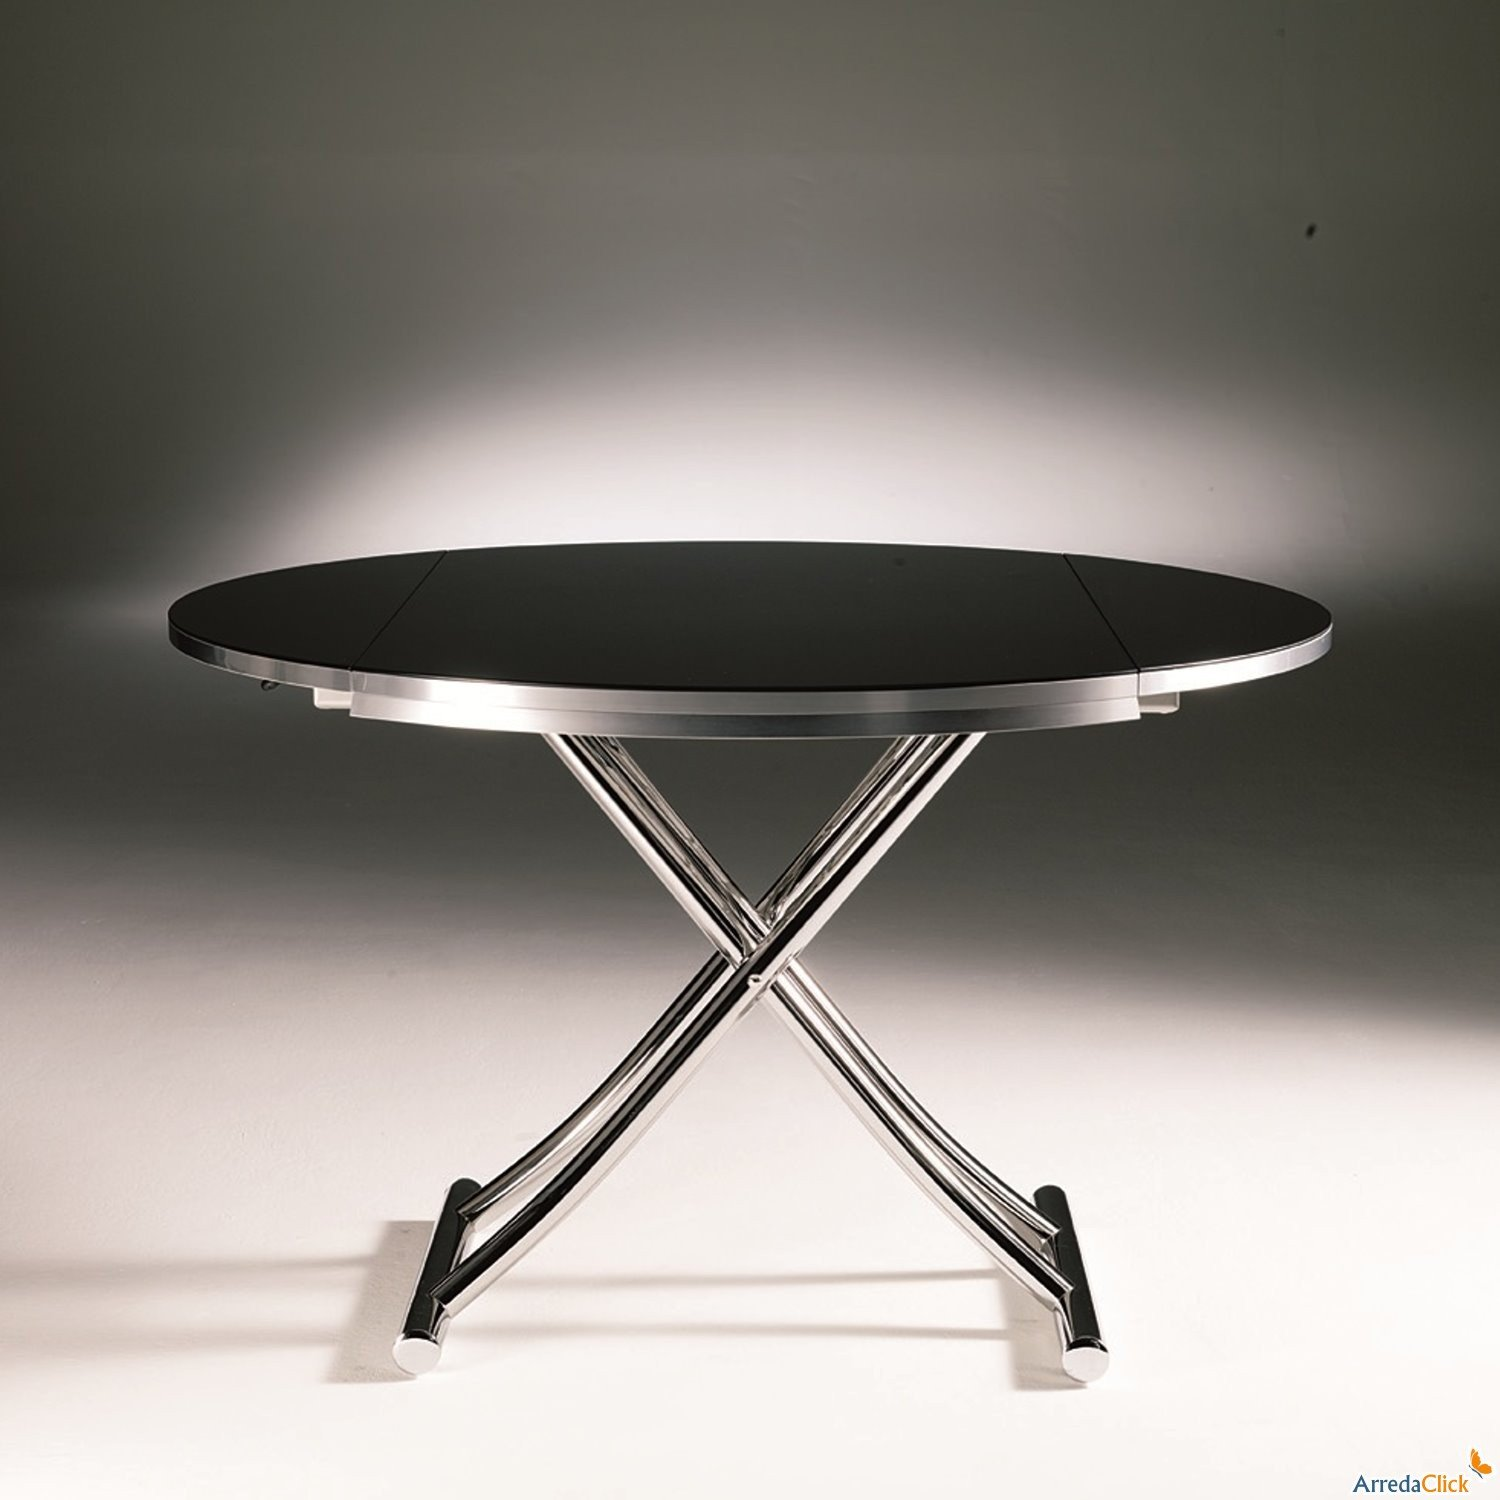 Le guide de la table relevable et transformable - Table ronde transformable ...